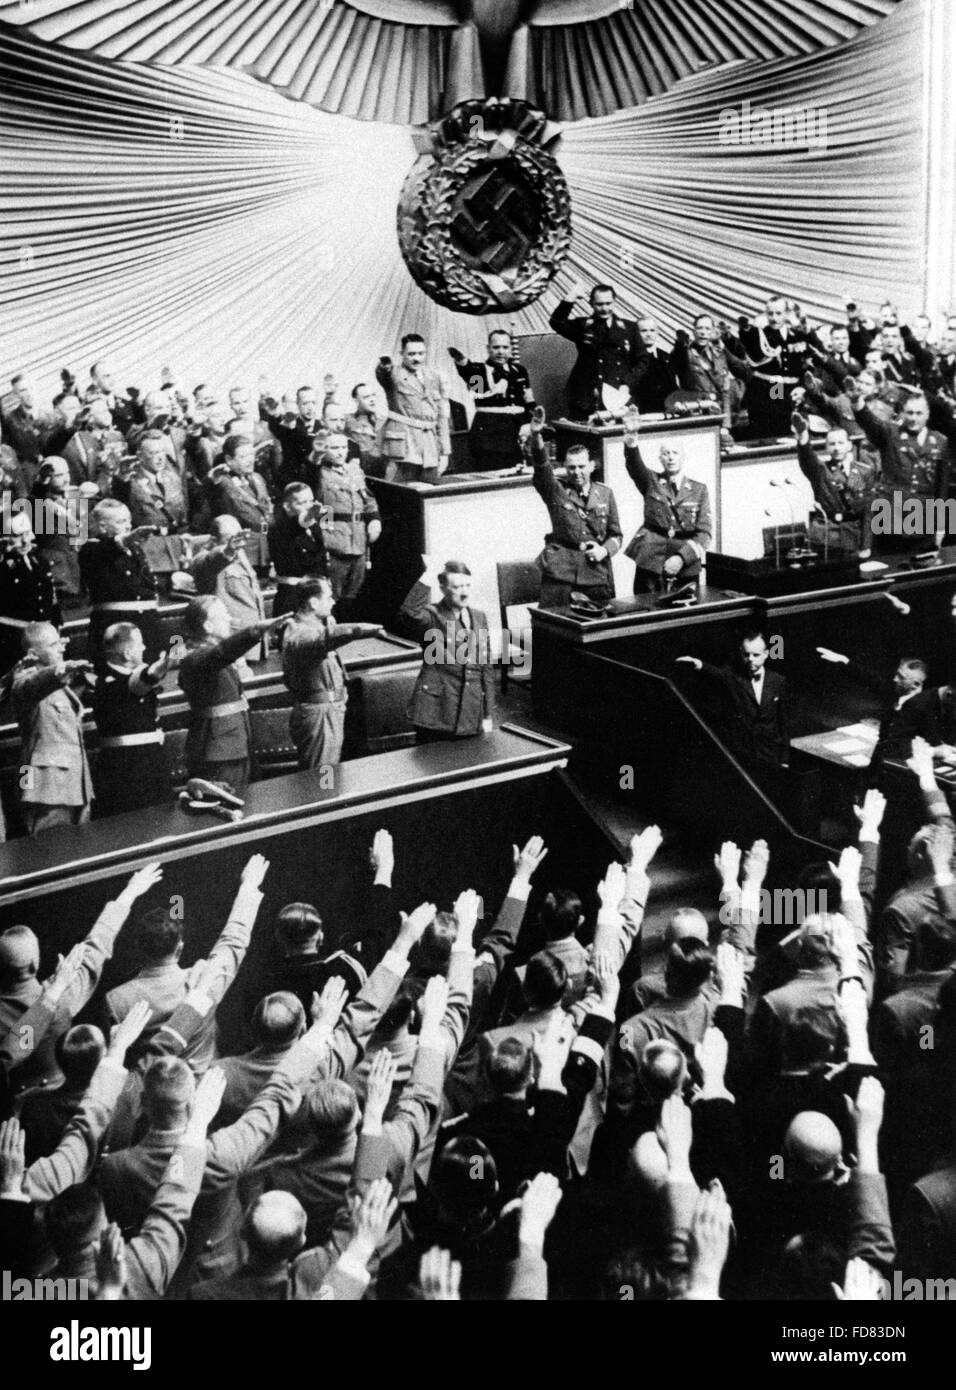 Adolf Hitler in the Reichstag, 1939 - Stock Image